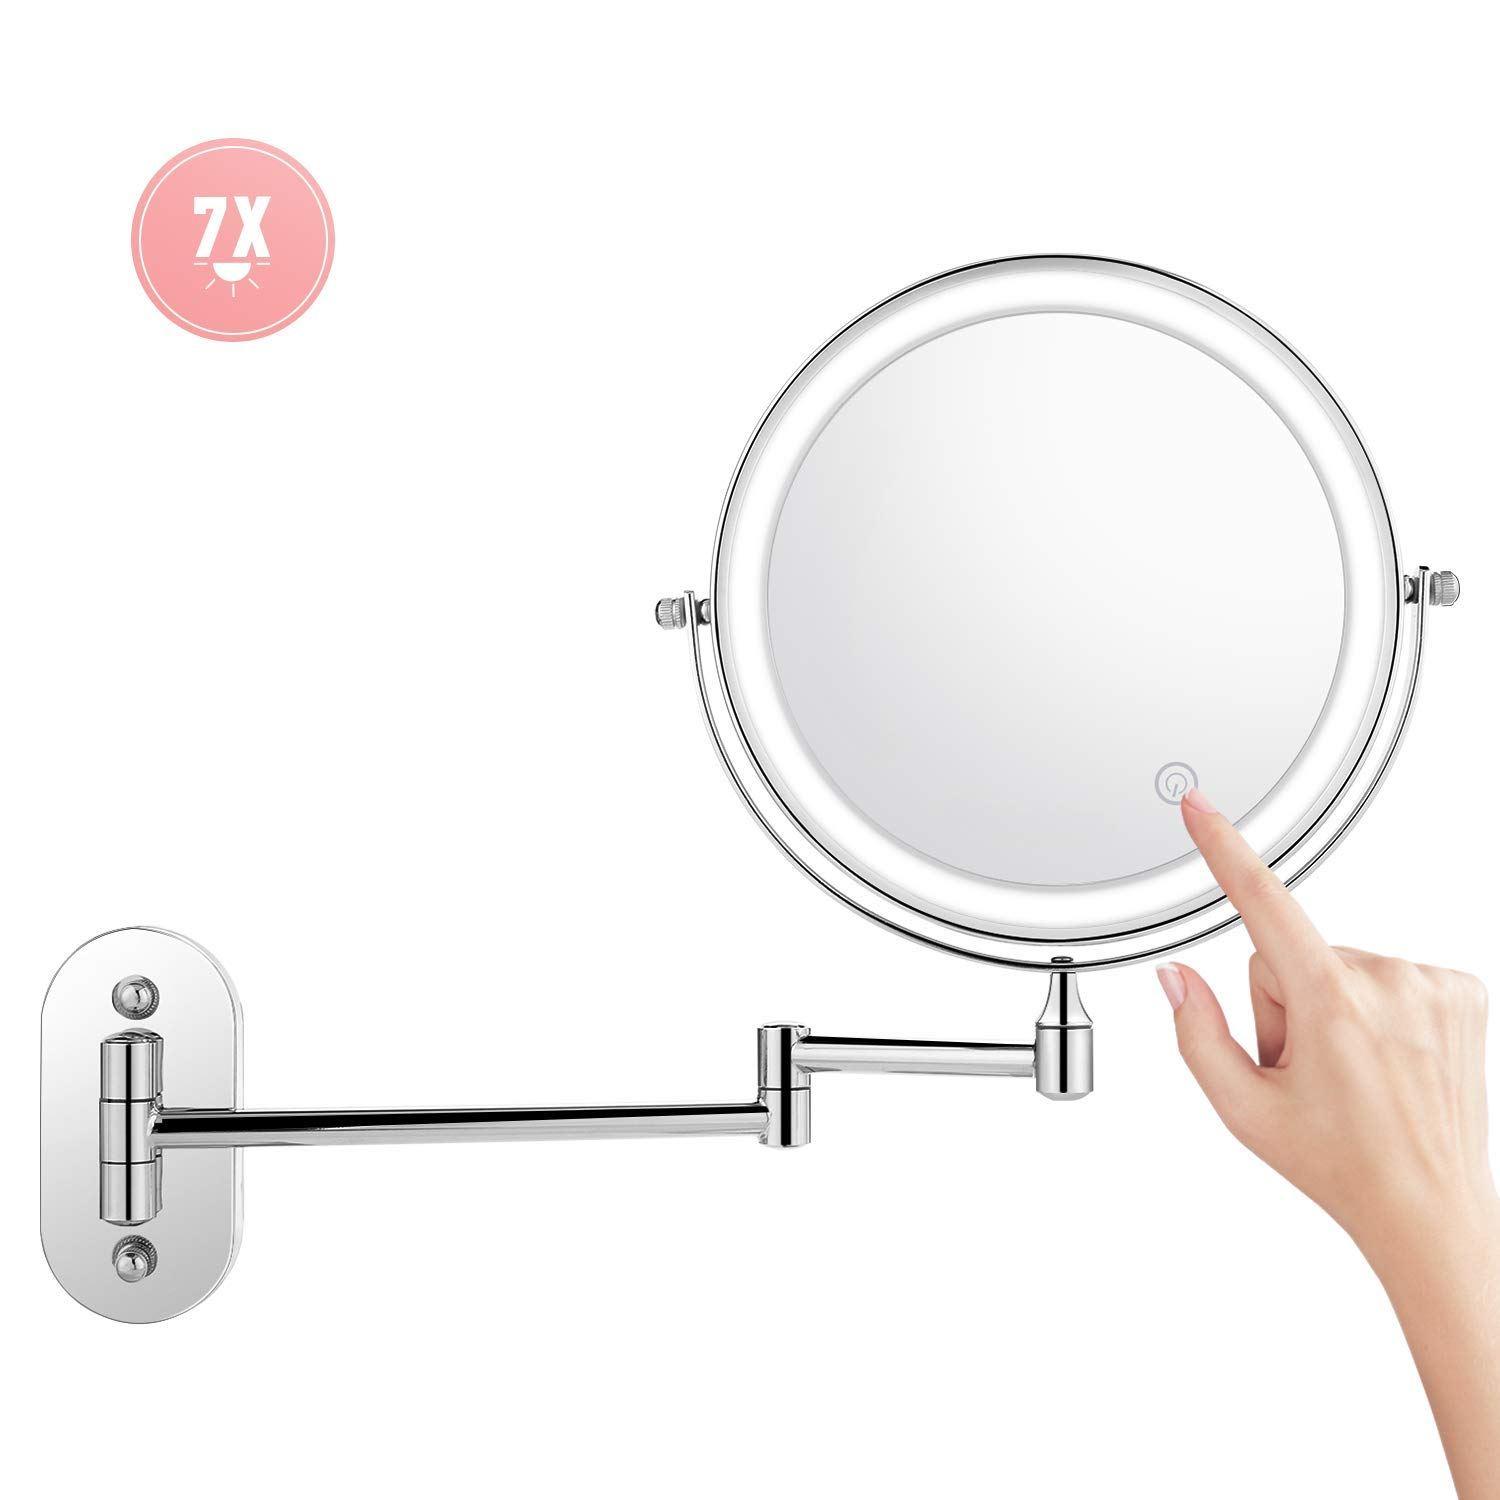 Himimi 7X Wall Mounted Makeup Mirror, Double Sided Swivel Vanity Mirror, Touch Button Adjustable Light, Stainless Steel, Shaving in Bedroom or Bathroom, 8 inch, 4 x AAA Batteries (not Included) by Himimi